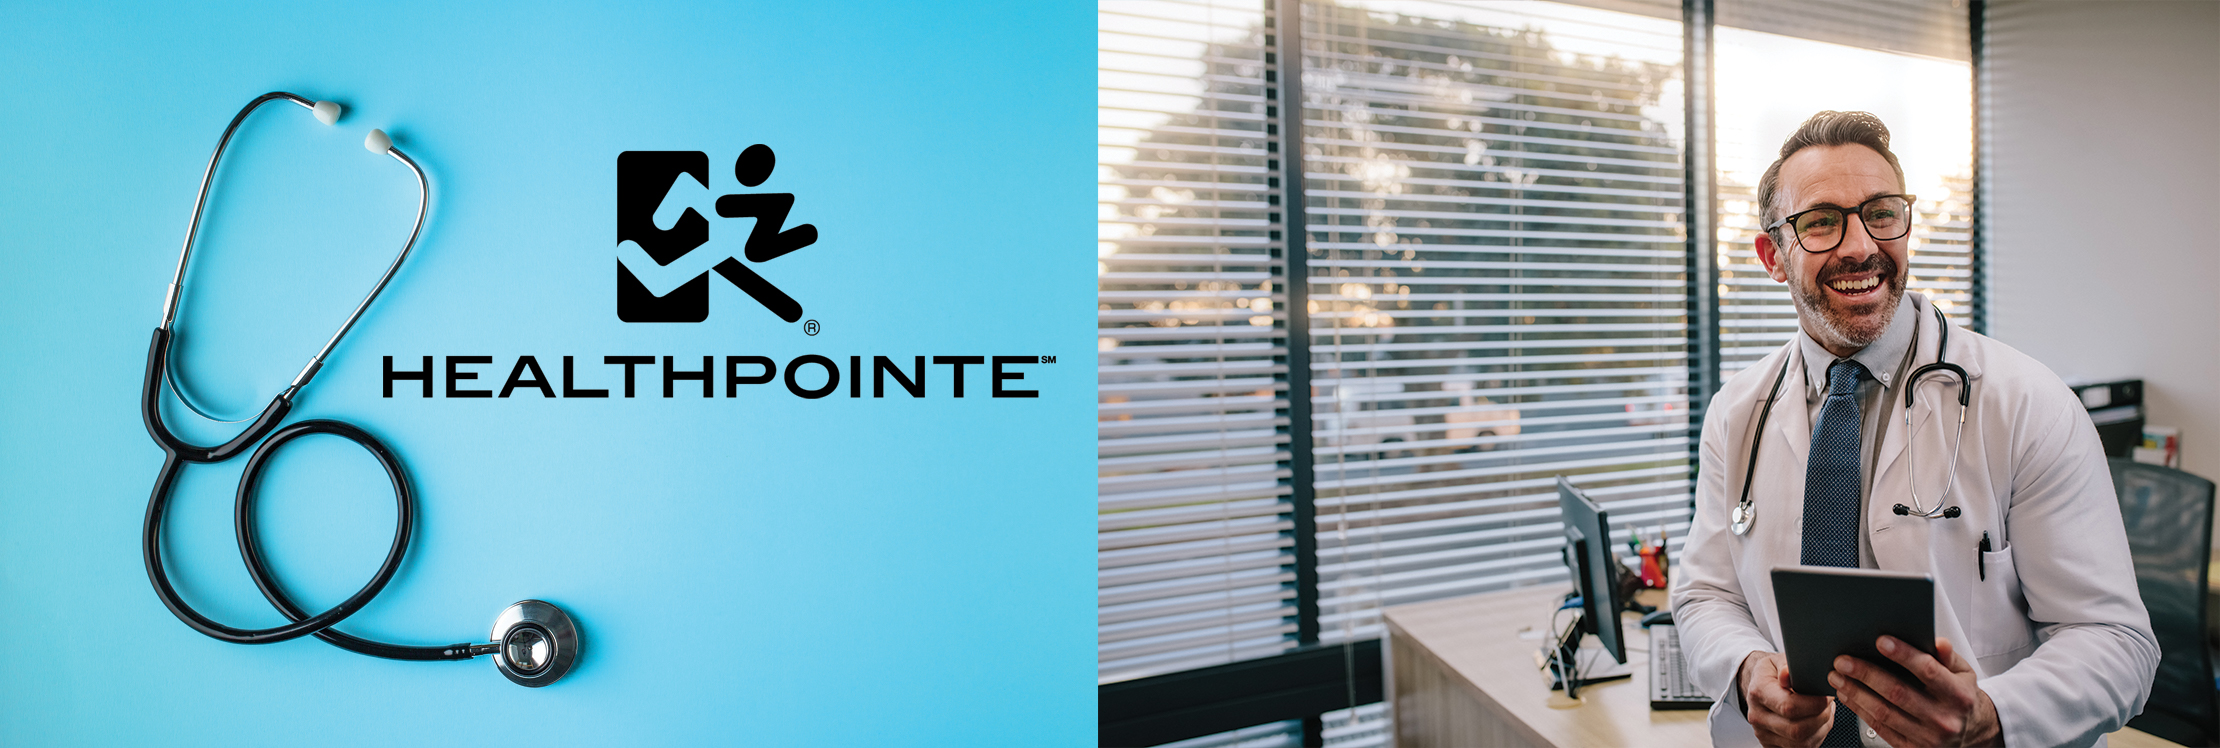 Healthpointe reviews | Medical Centers at 5584 N Paramount Blvd - Long Beach CA